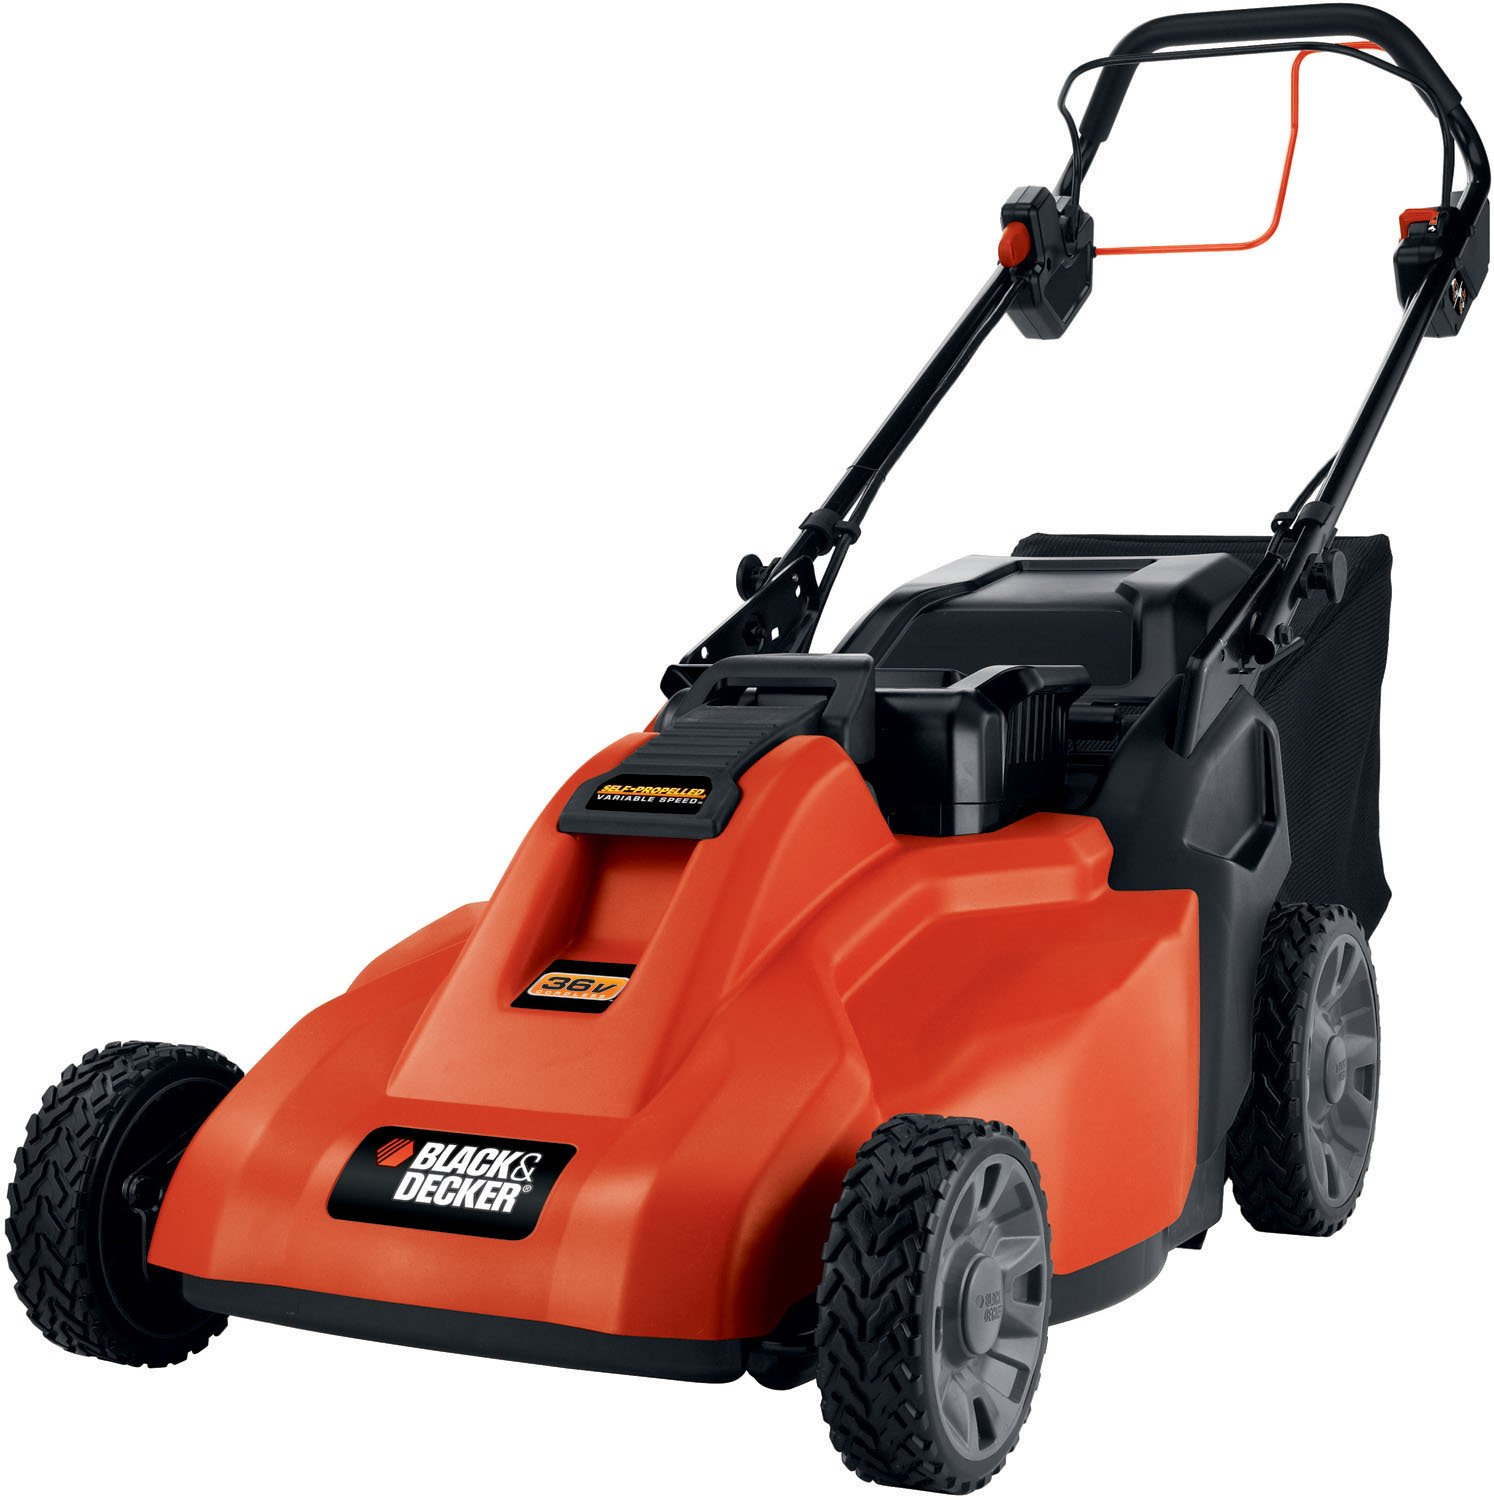 71tyfcgi tL._SL1500_ amazon com black & decker spcm1936 19 inch 36 volt cordless wiring diagram for black and decker electric lawn mower at gsmportal.co